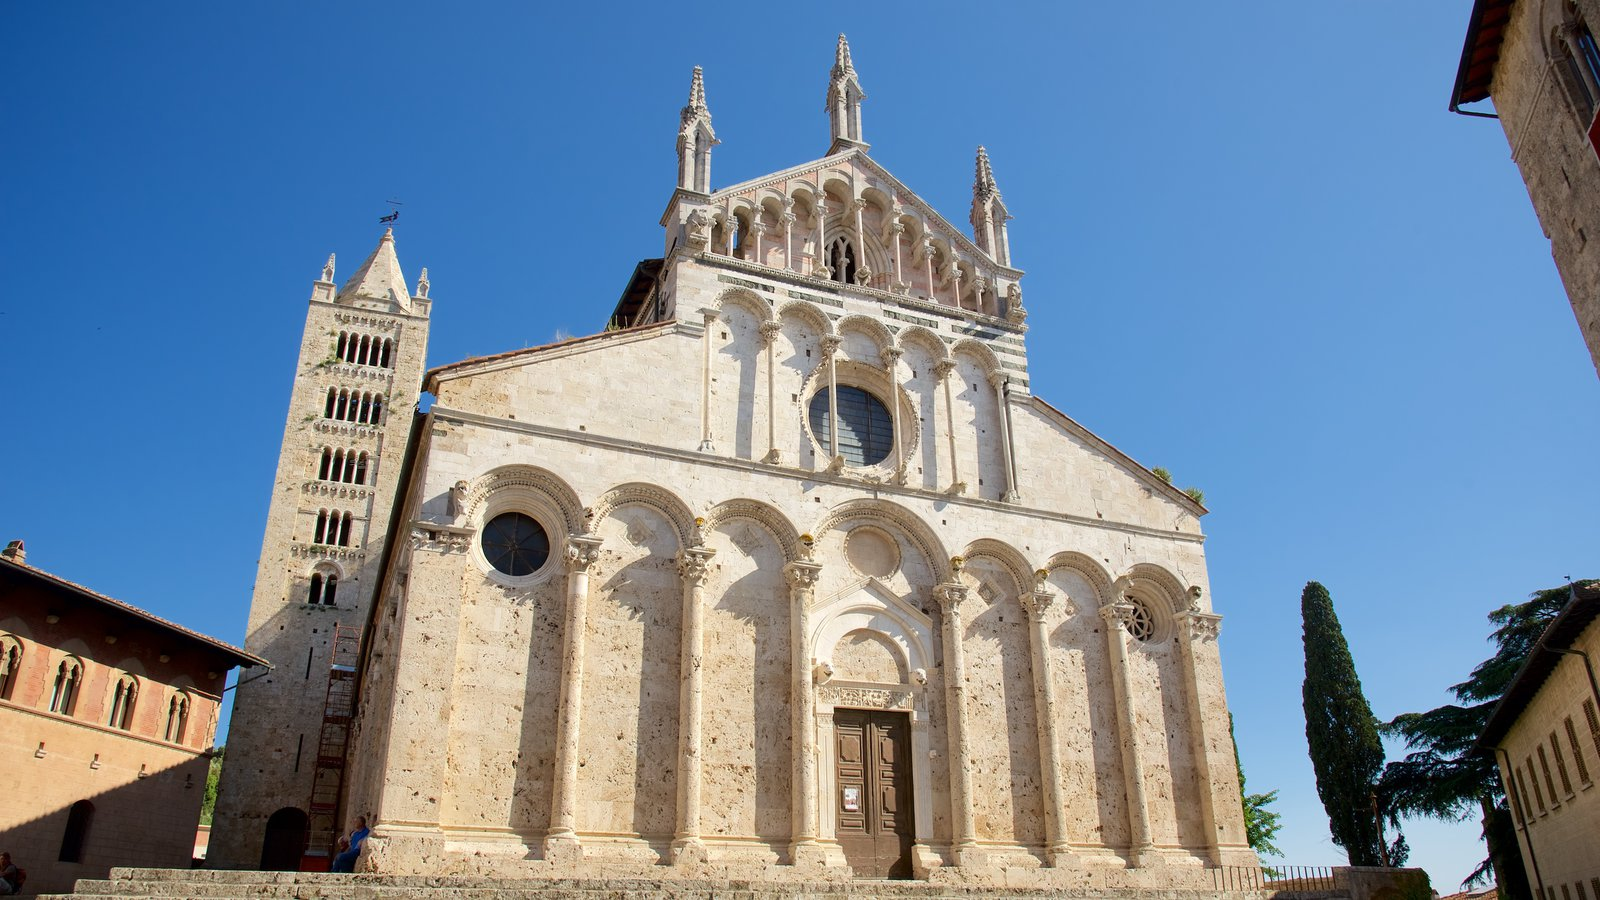 Massa Marittima featuring heritage architecture, a church or cathedral and religious aspects